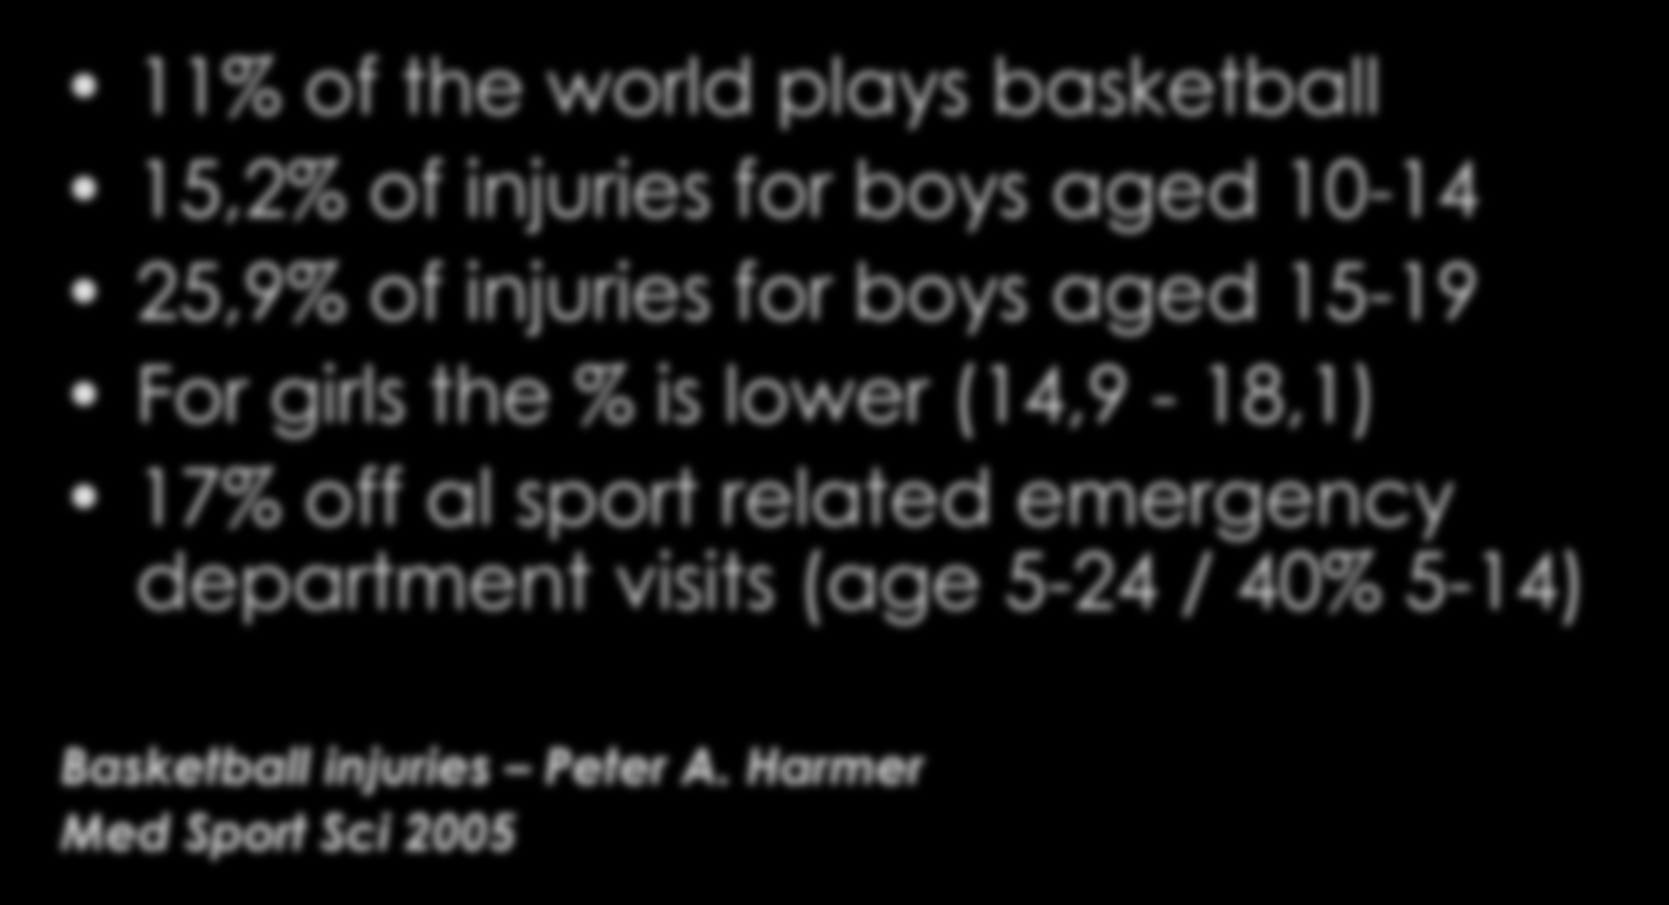 Literatuur - Incidentie 11% of the world plays basketball 15,2% of injuries for boys aged 10-14 25,9% of injuries for boys aged 15-19 For girls the %